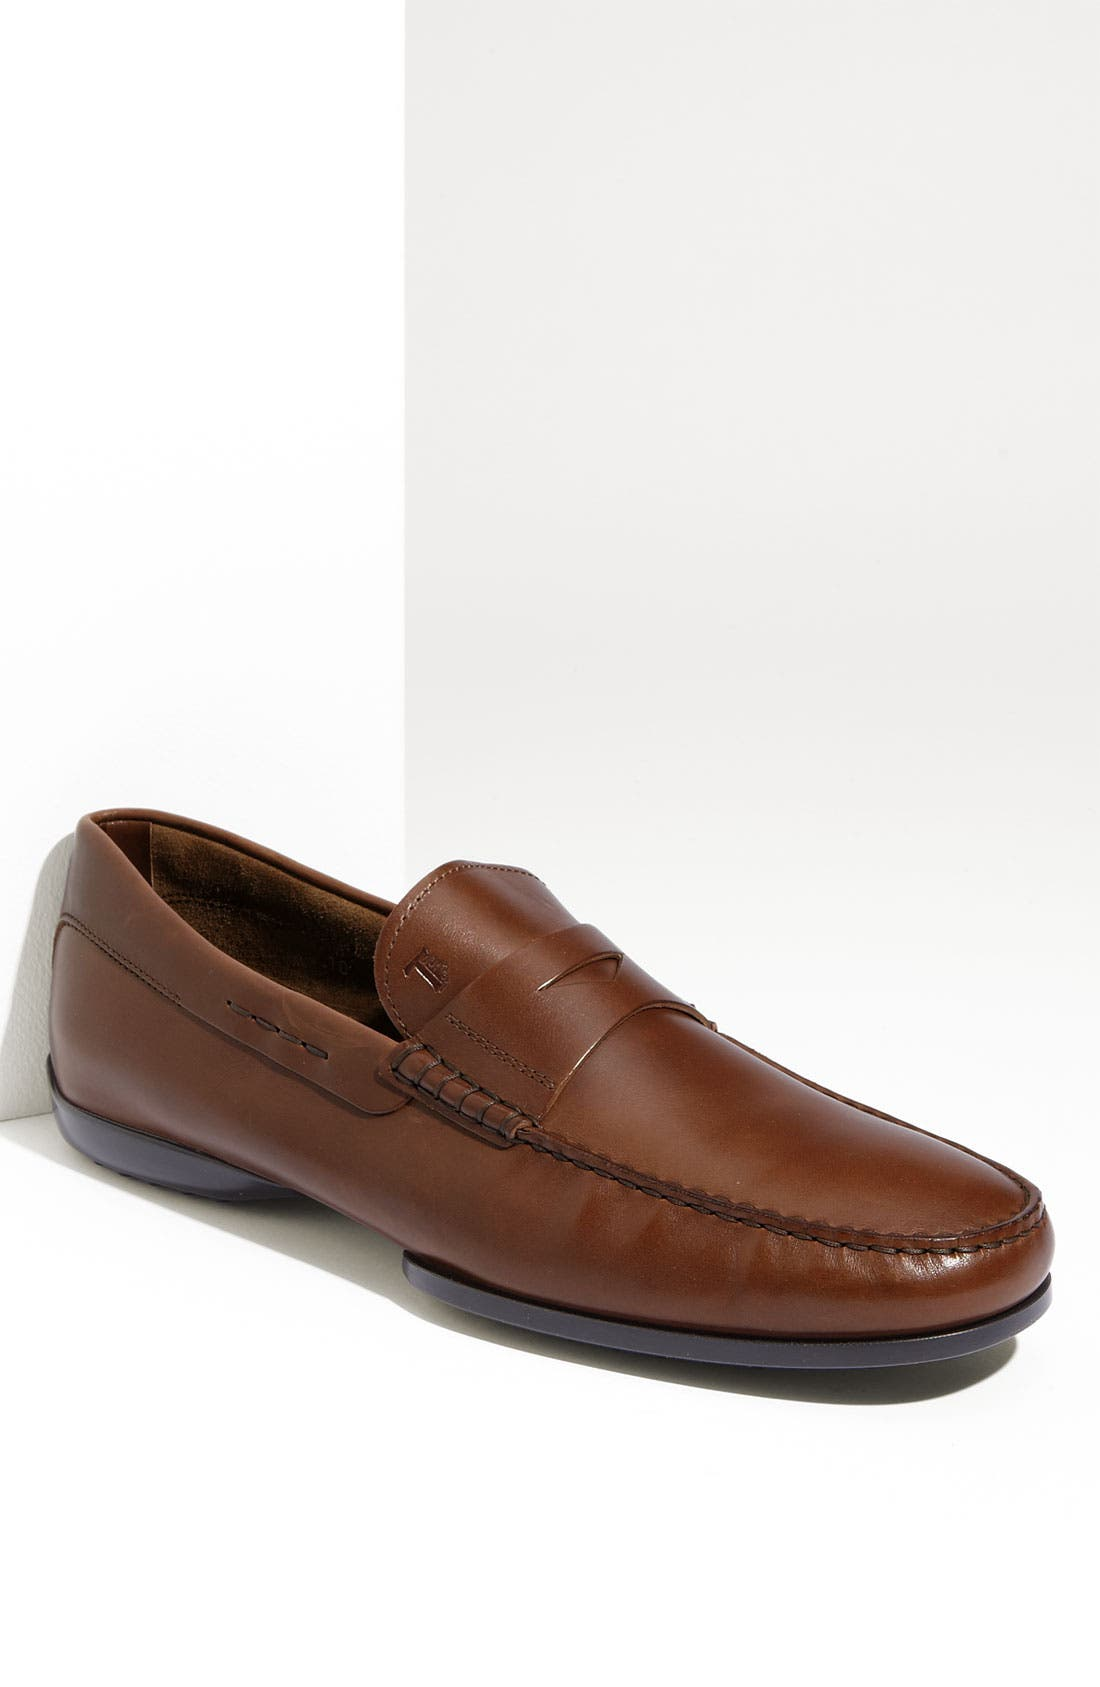 Main Image - Tod's 'Brooklyn' Penny Loafer